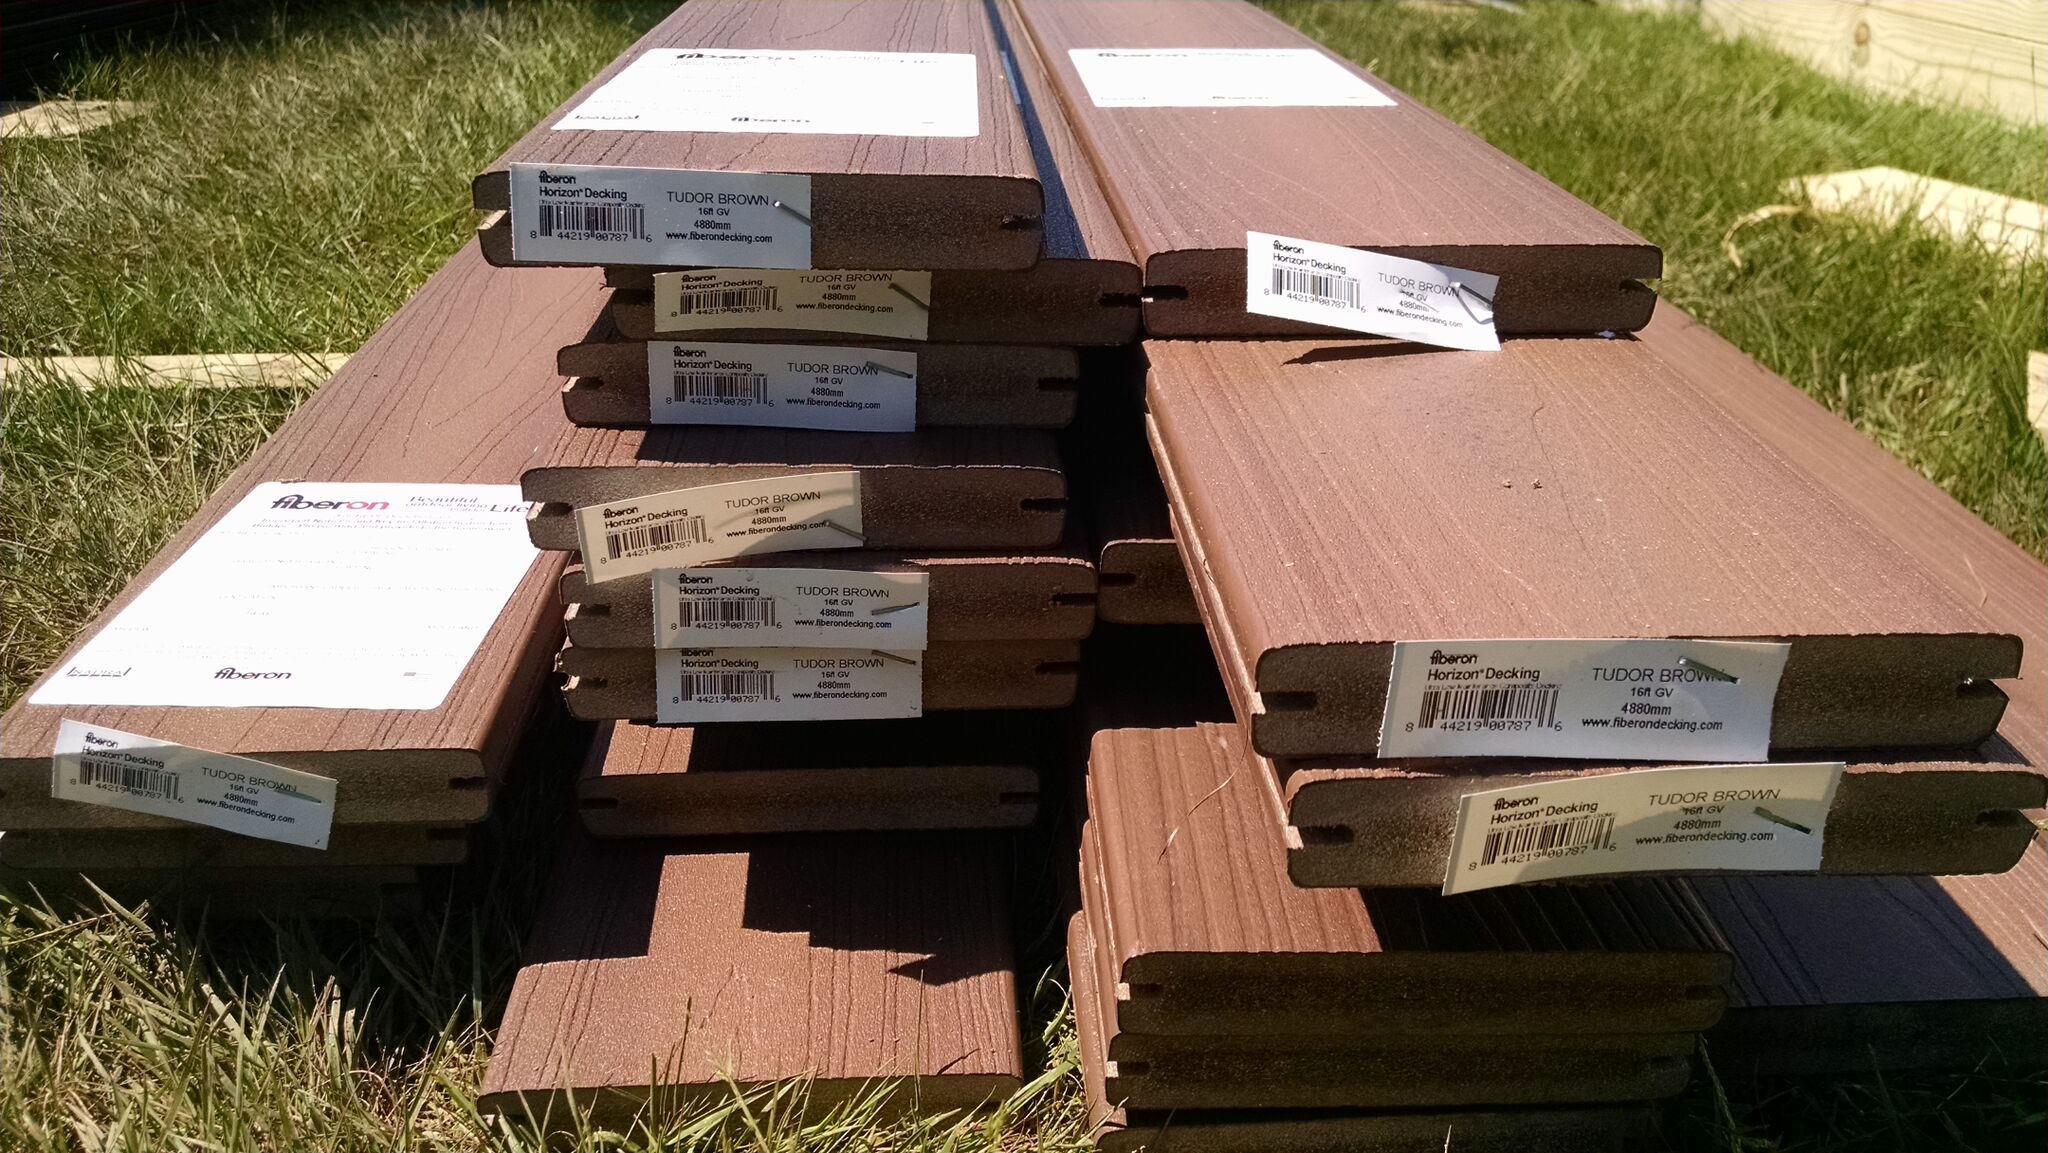 Fiberon Deck Boards (Long Island/NY):